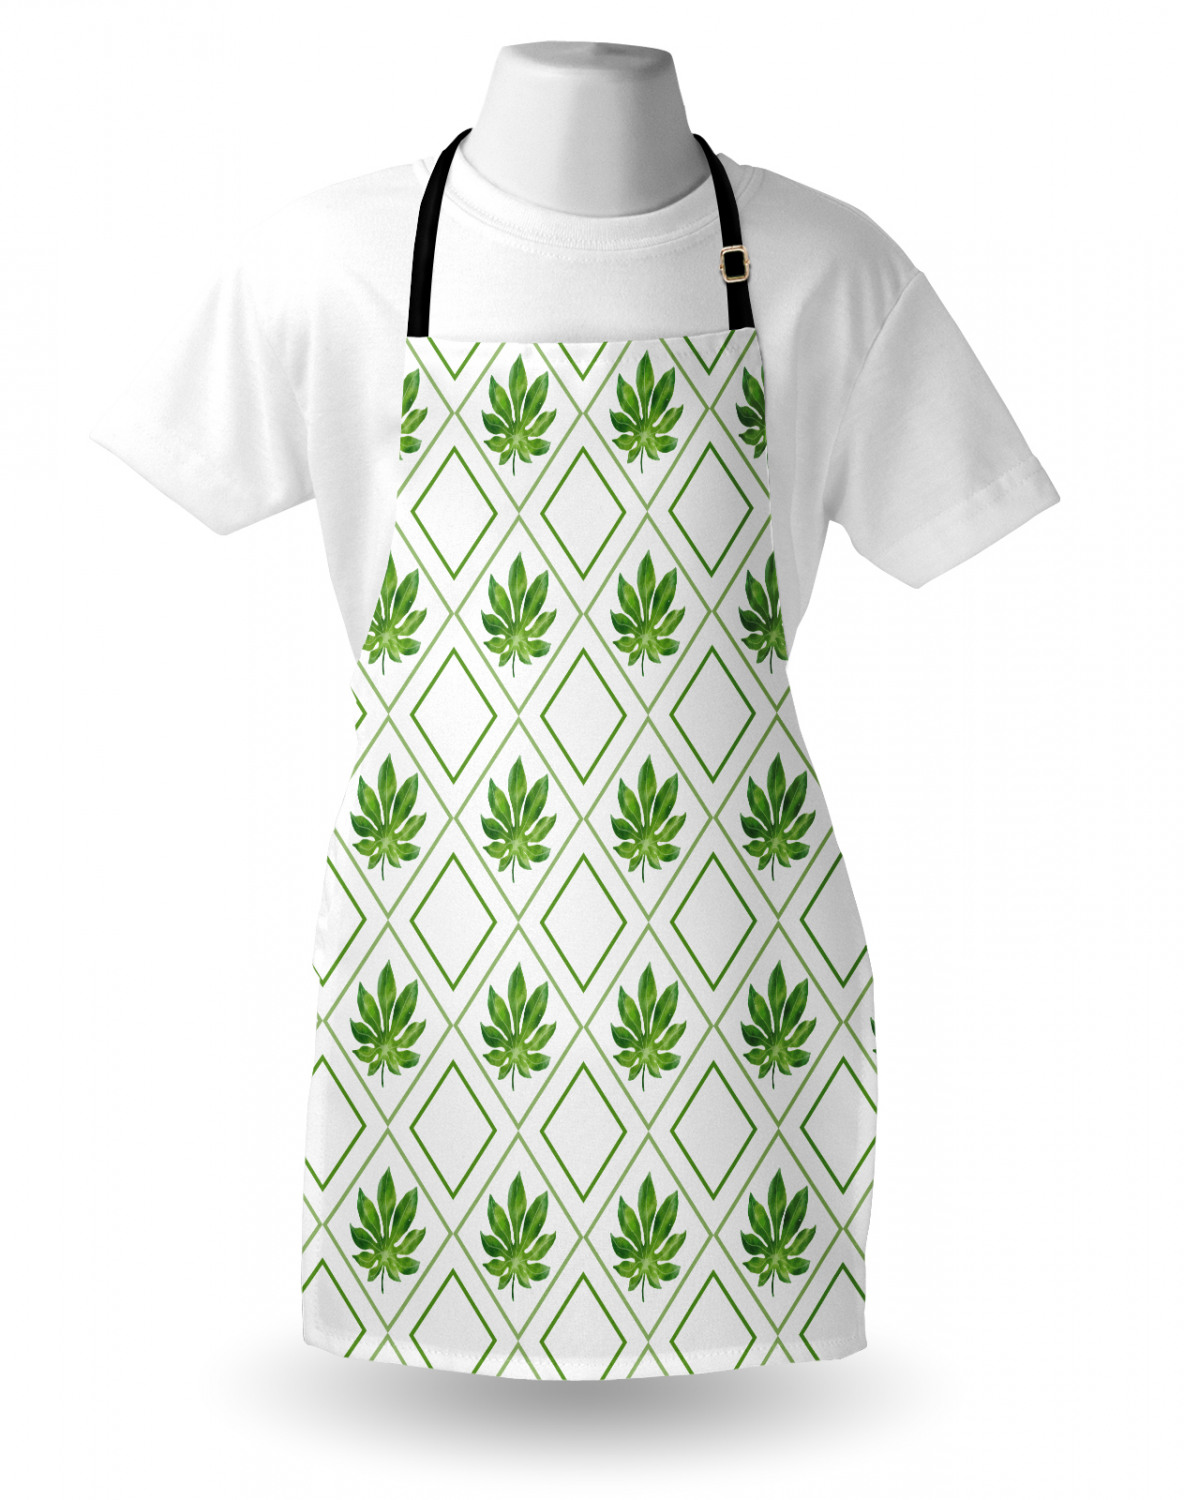 Ambesonne-Outdoor-Use-Apron-with-Adjustable-Neck-Strap-for-Gardening-and-Cooking miniatura 177